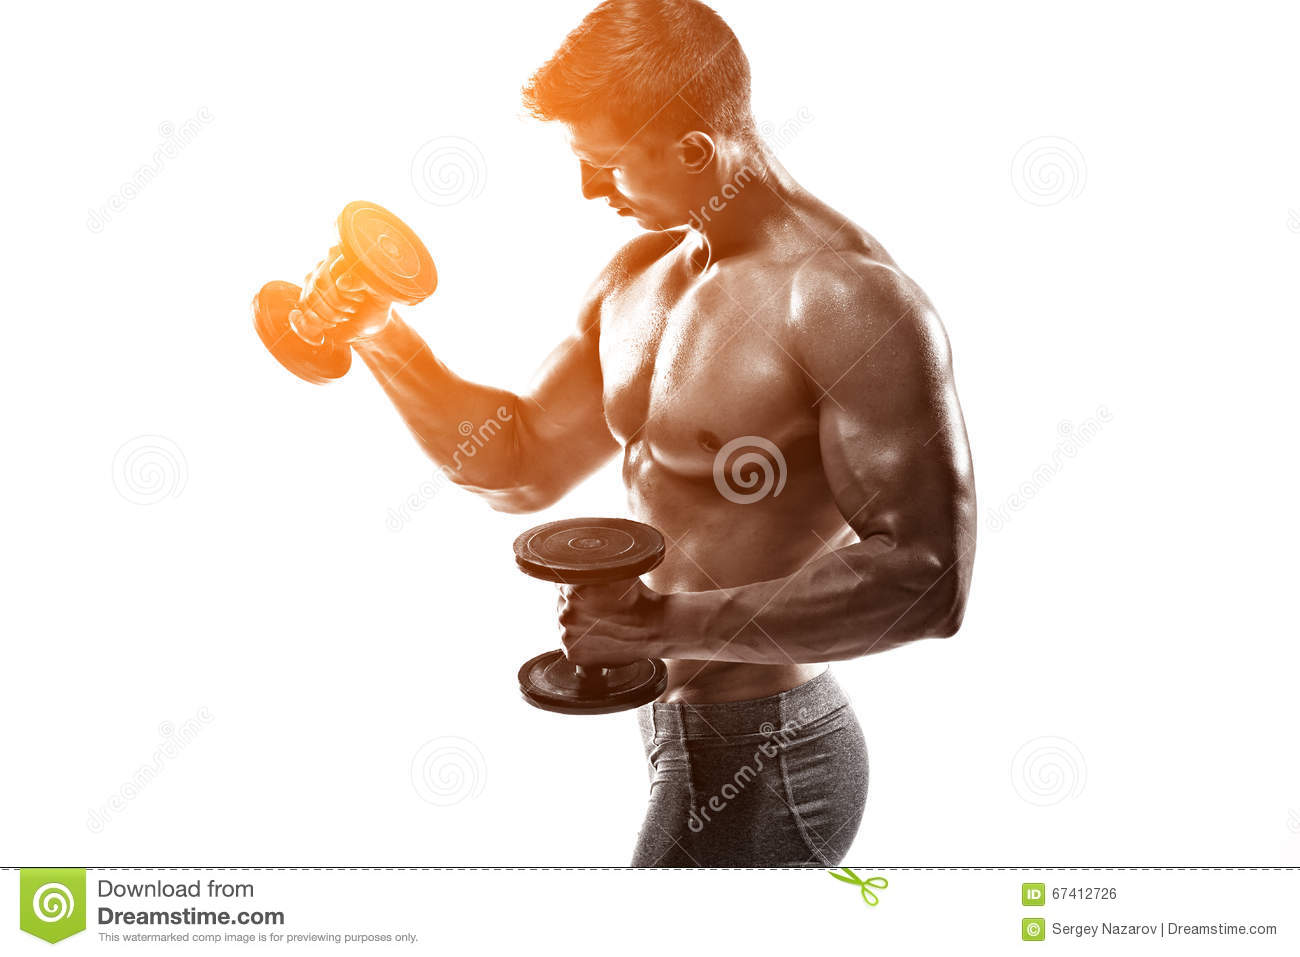 Attractive Muscular Man Is Posing With Dumbbell. Fitness